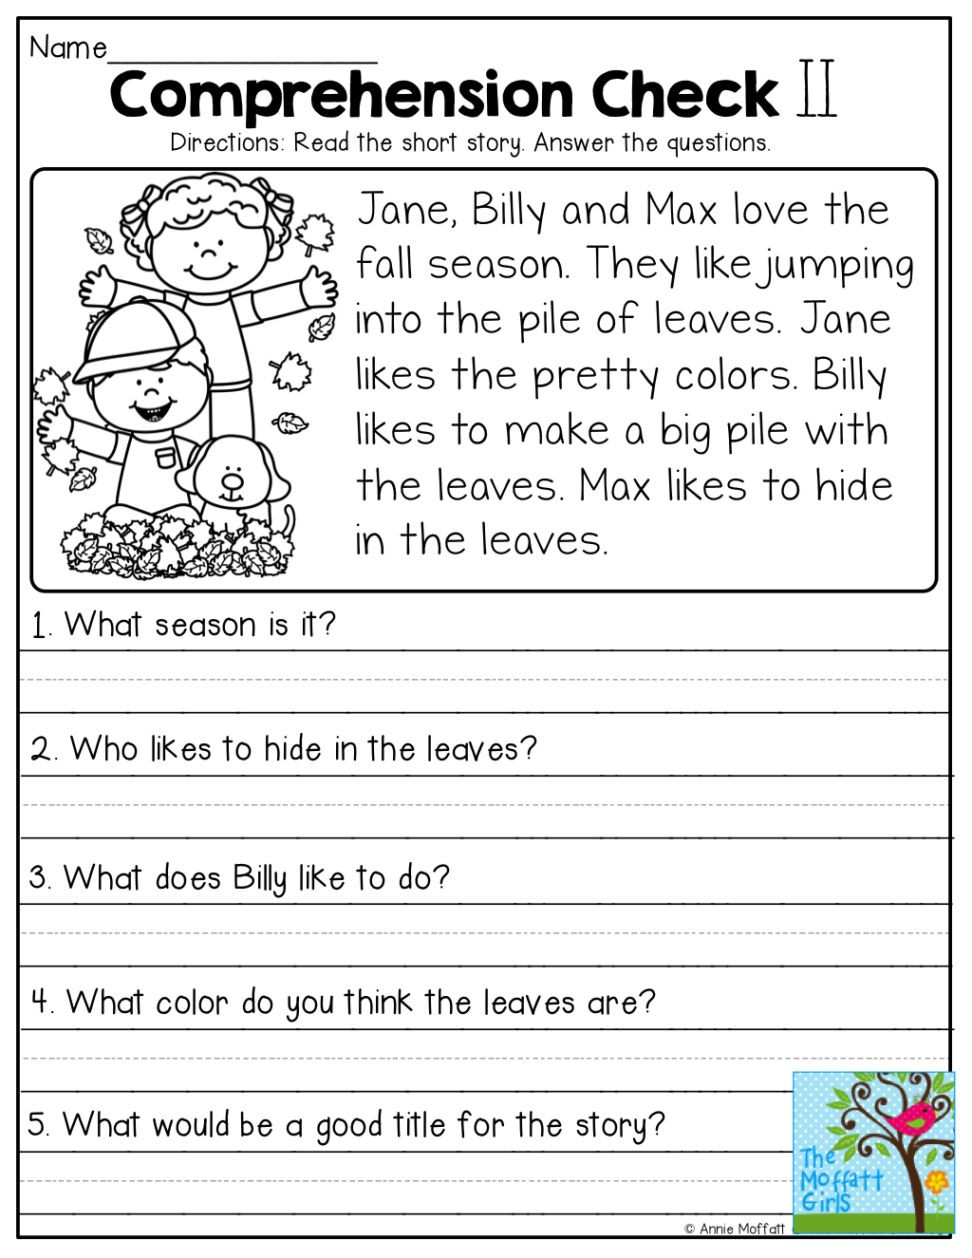 Reading Worksheets Grade 5 38 Innovative Reading Prehension Worksheets Design Ideas